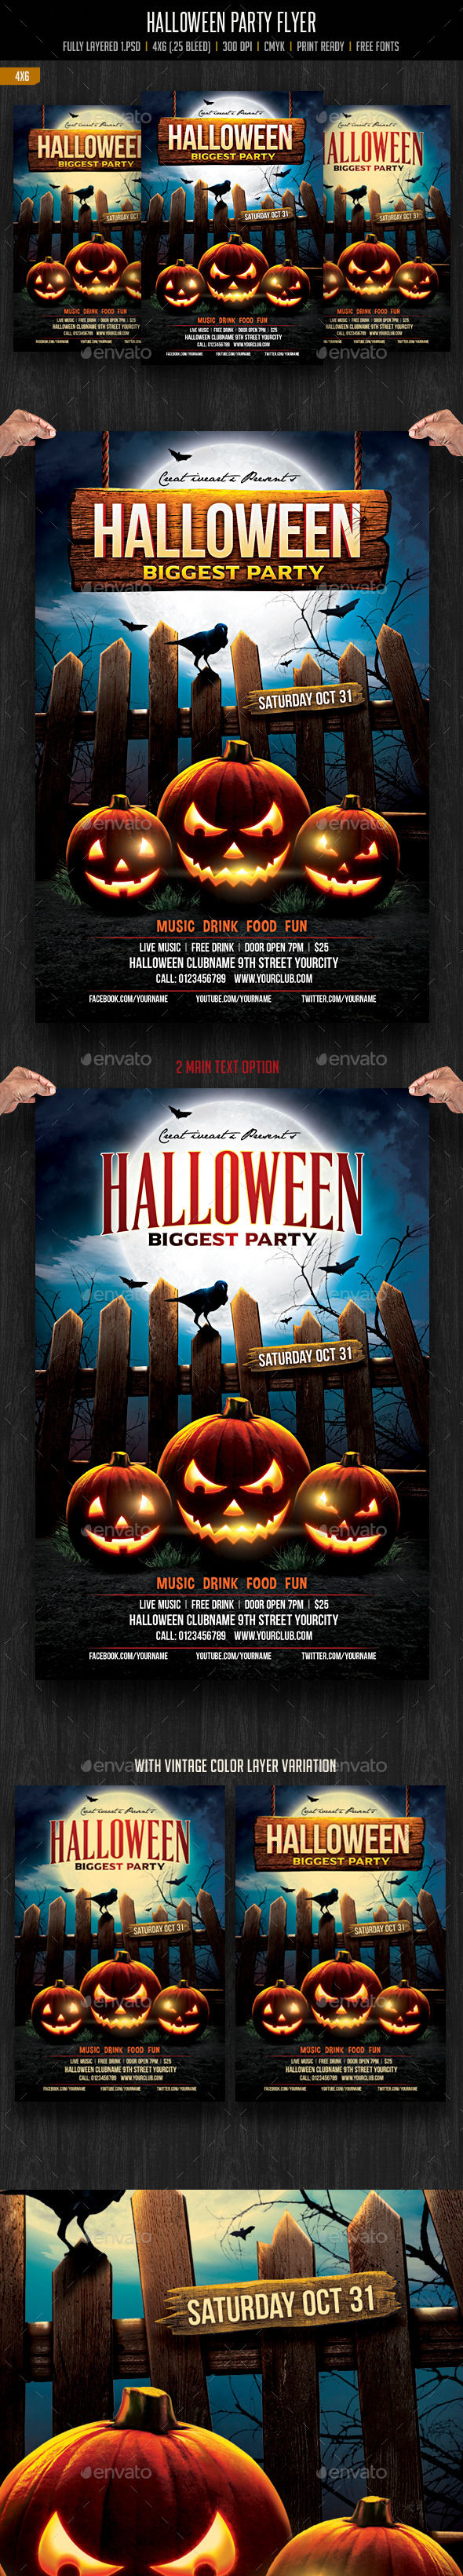 Halloween Party Flyer by Creativeartx (Halloween party flyer)